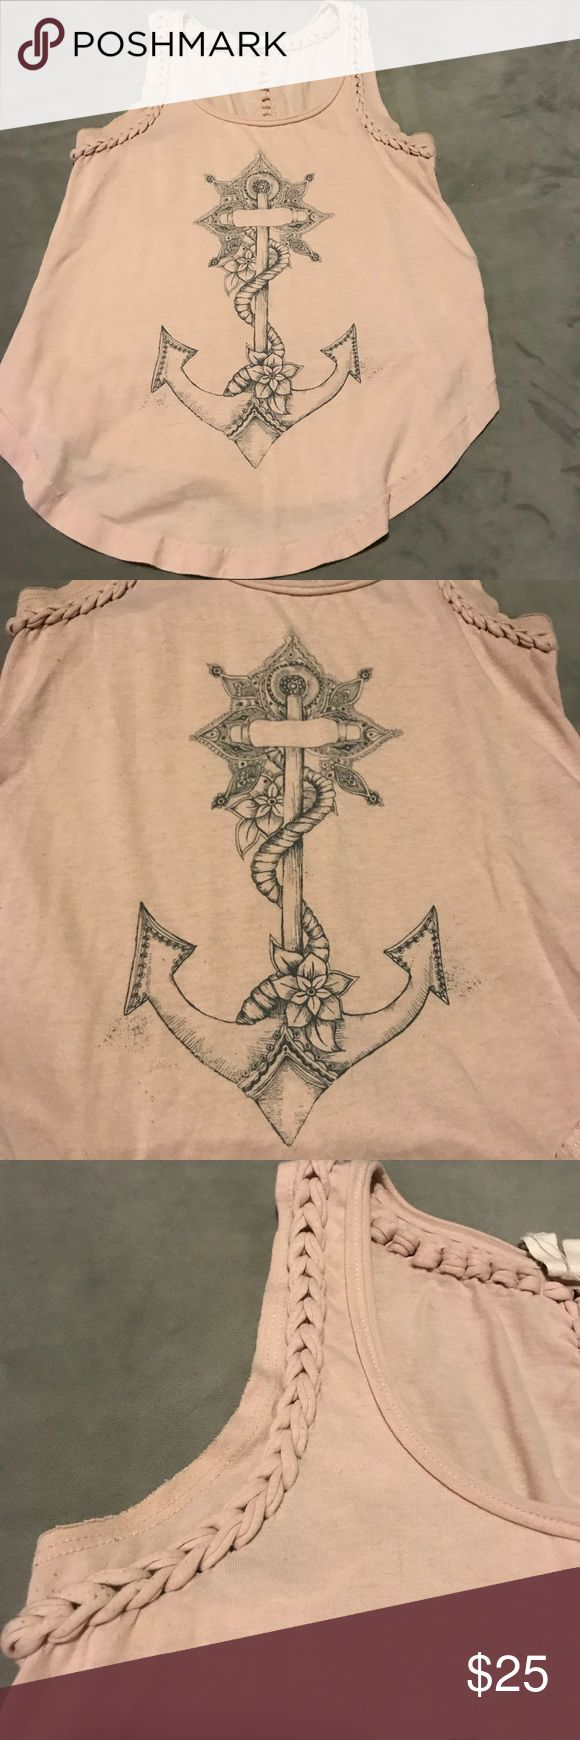 Free People Anchor Tank Free people anchor tank top light pink. Dark blue/grey detailing on the front. The top and back have braided detail that is really pretty! Free People Tops Tank Tops